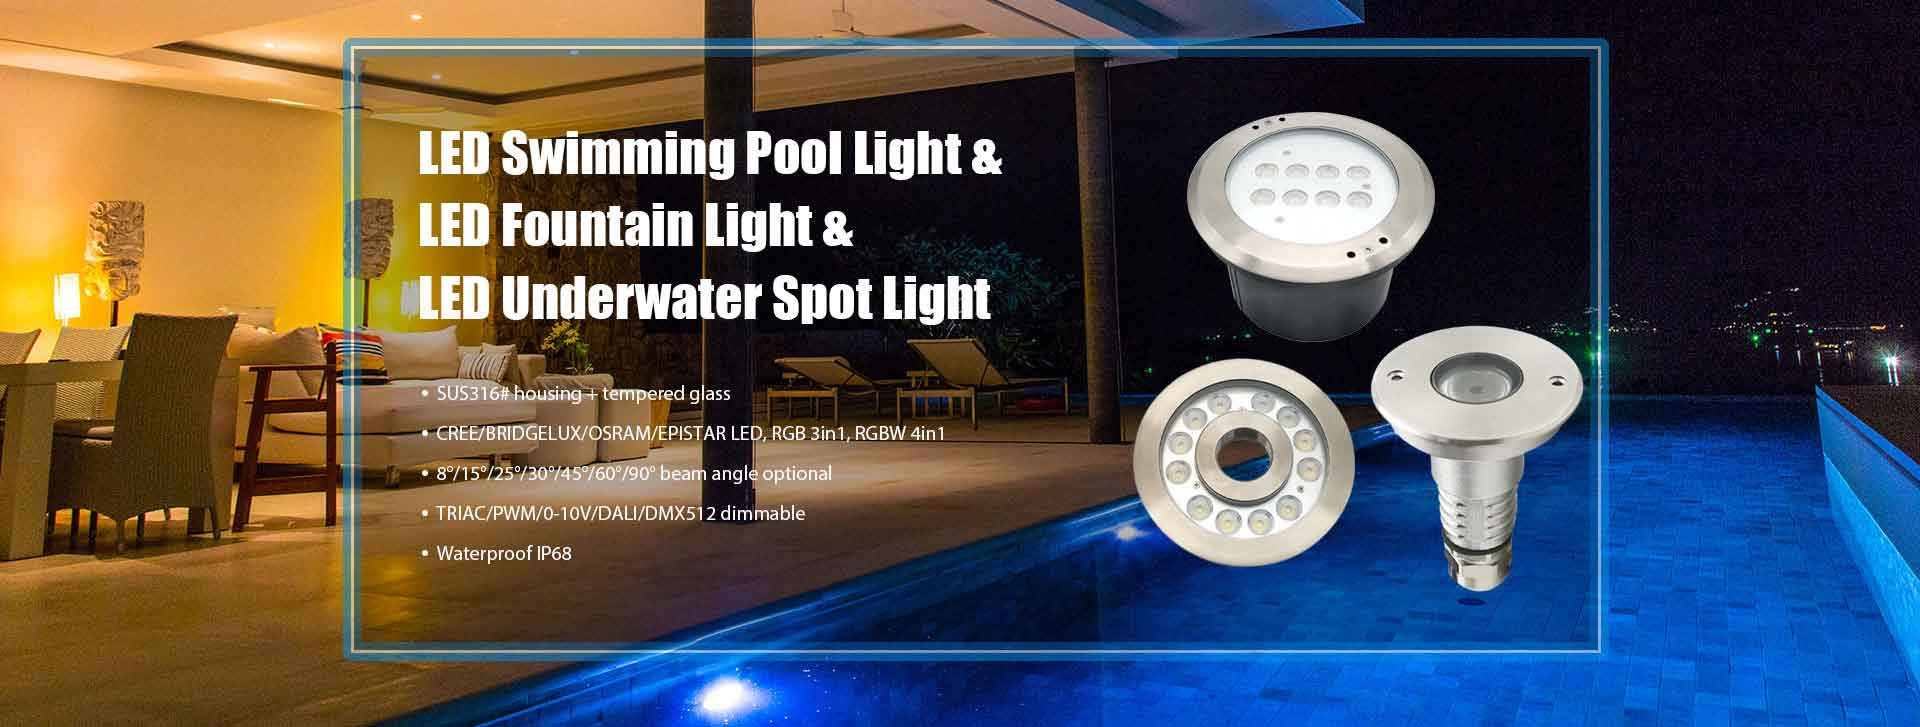 LED Swimming Pool Light LED Fountain Light LED Underwater Spot Light